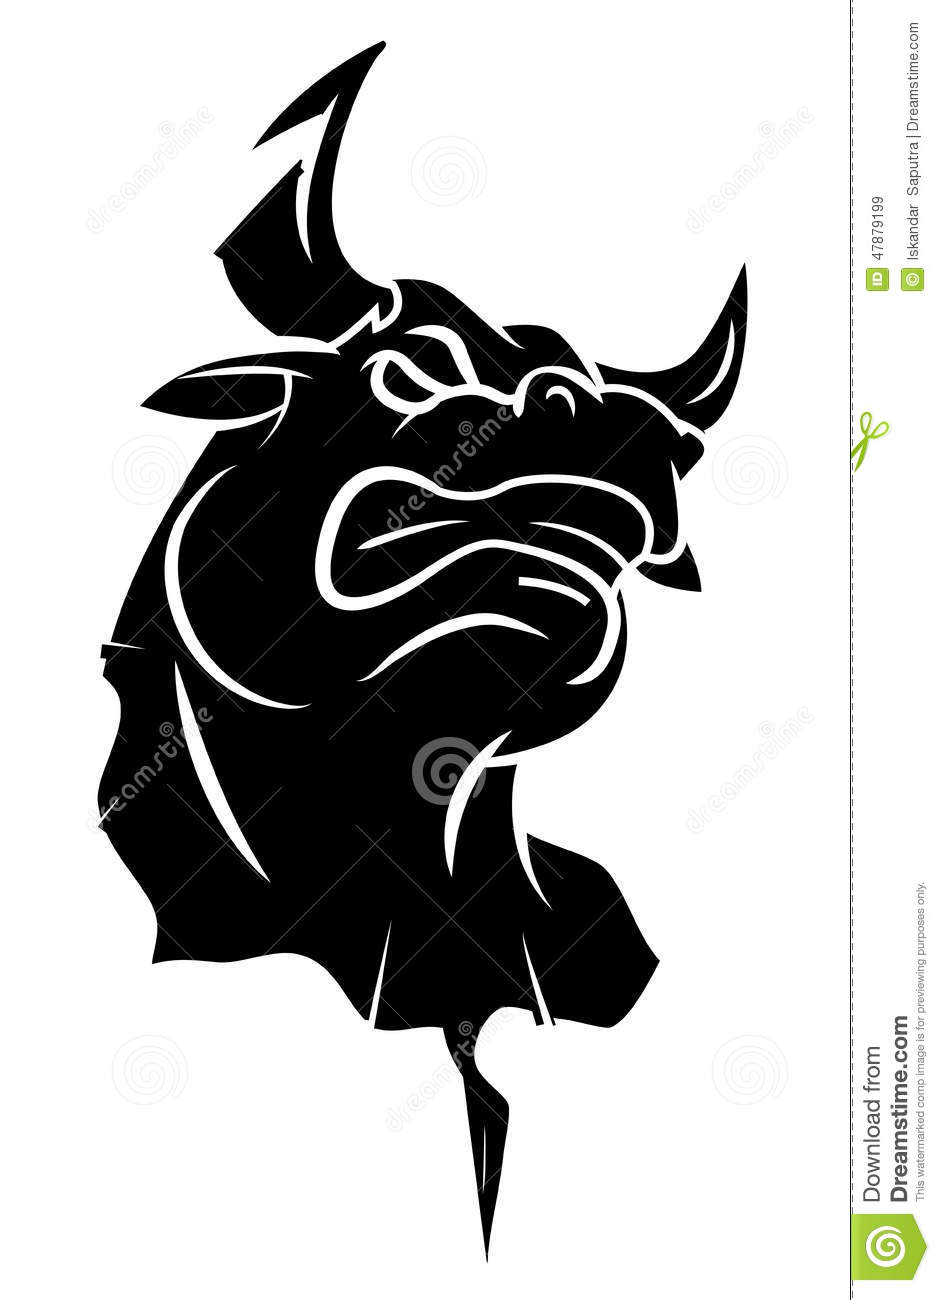 angry bull head logo - photo #28